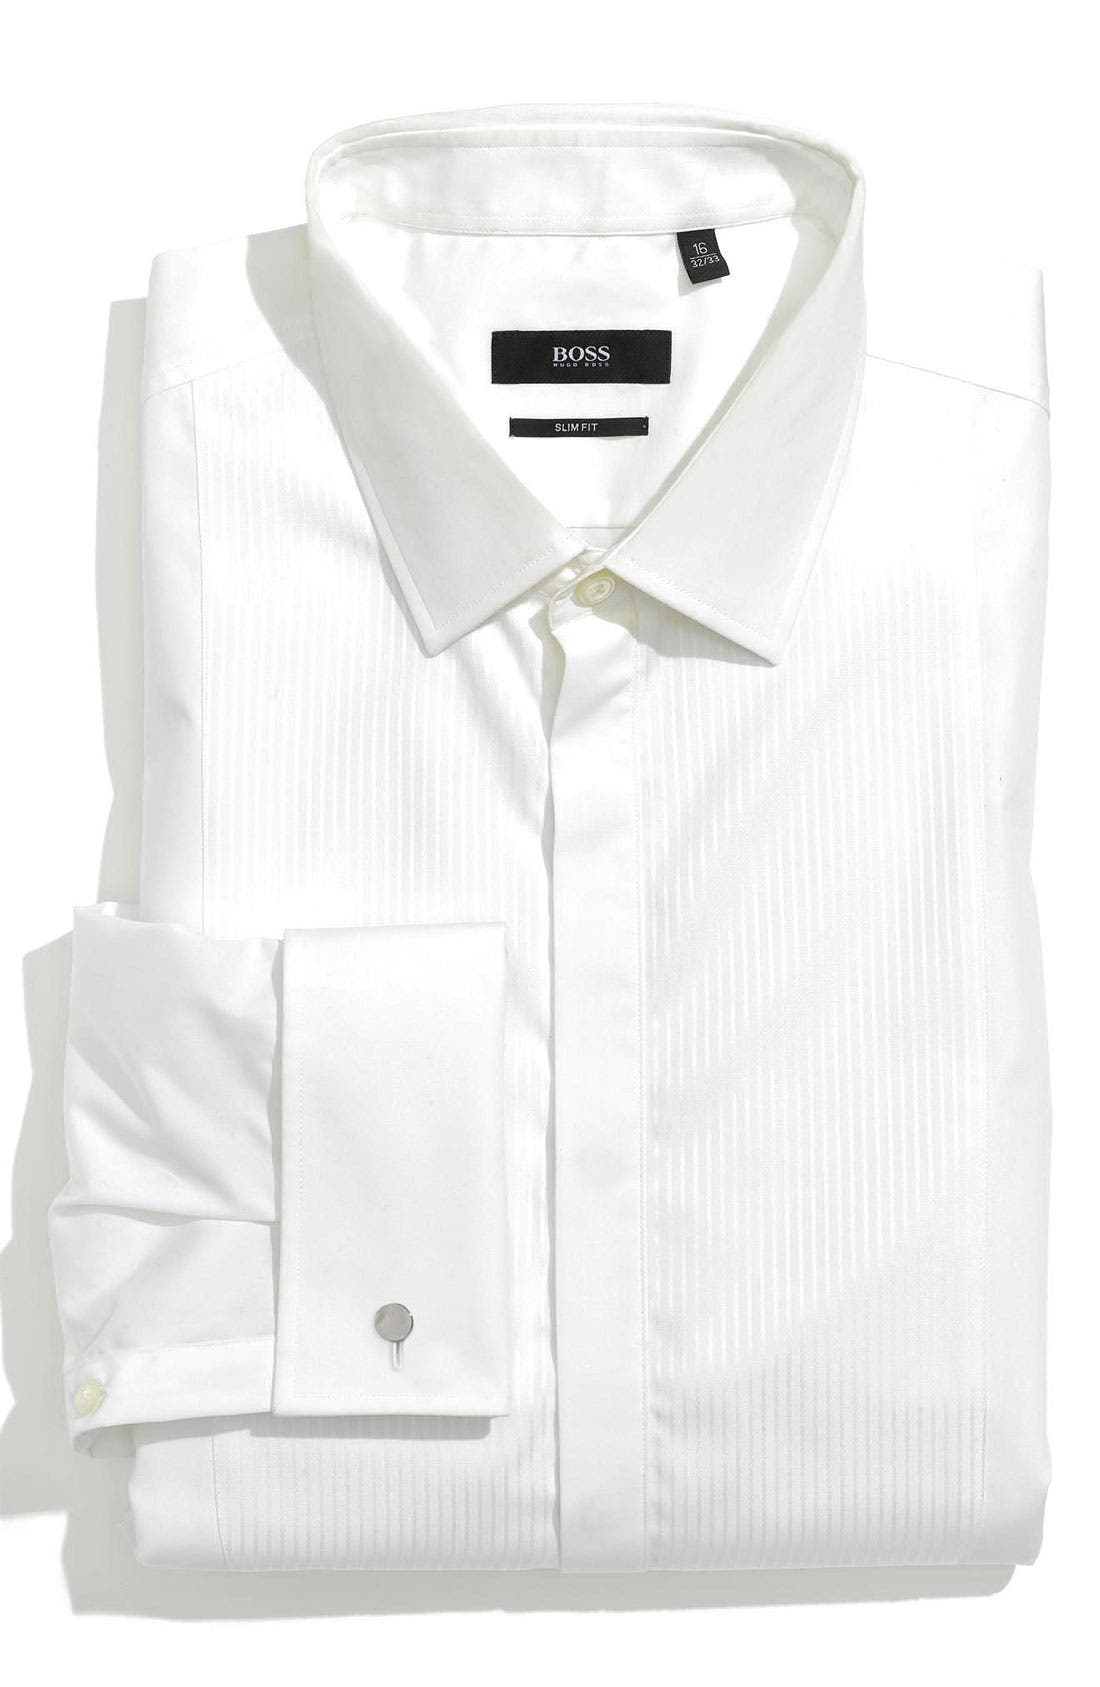 Alternate Image 1 Selected - BOSS HUGO BOSS 'Jason' Slim Fit Tuxedo Shirt